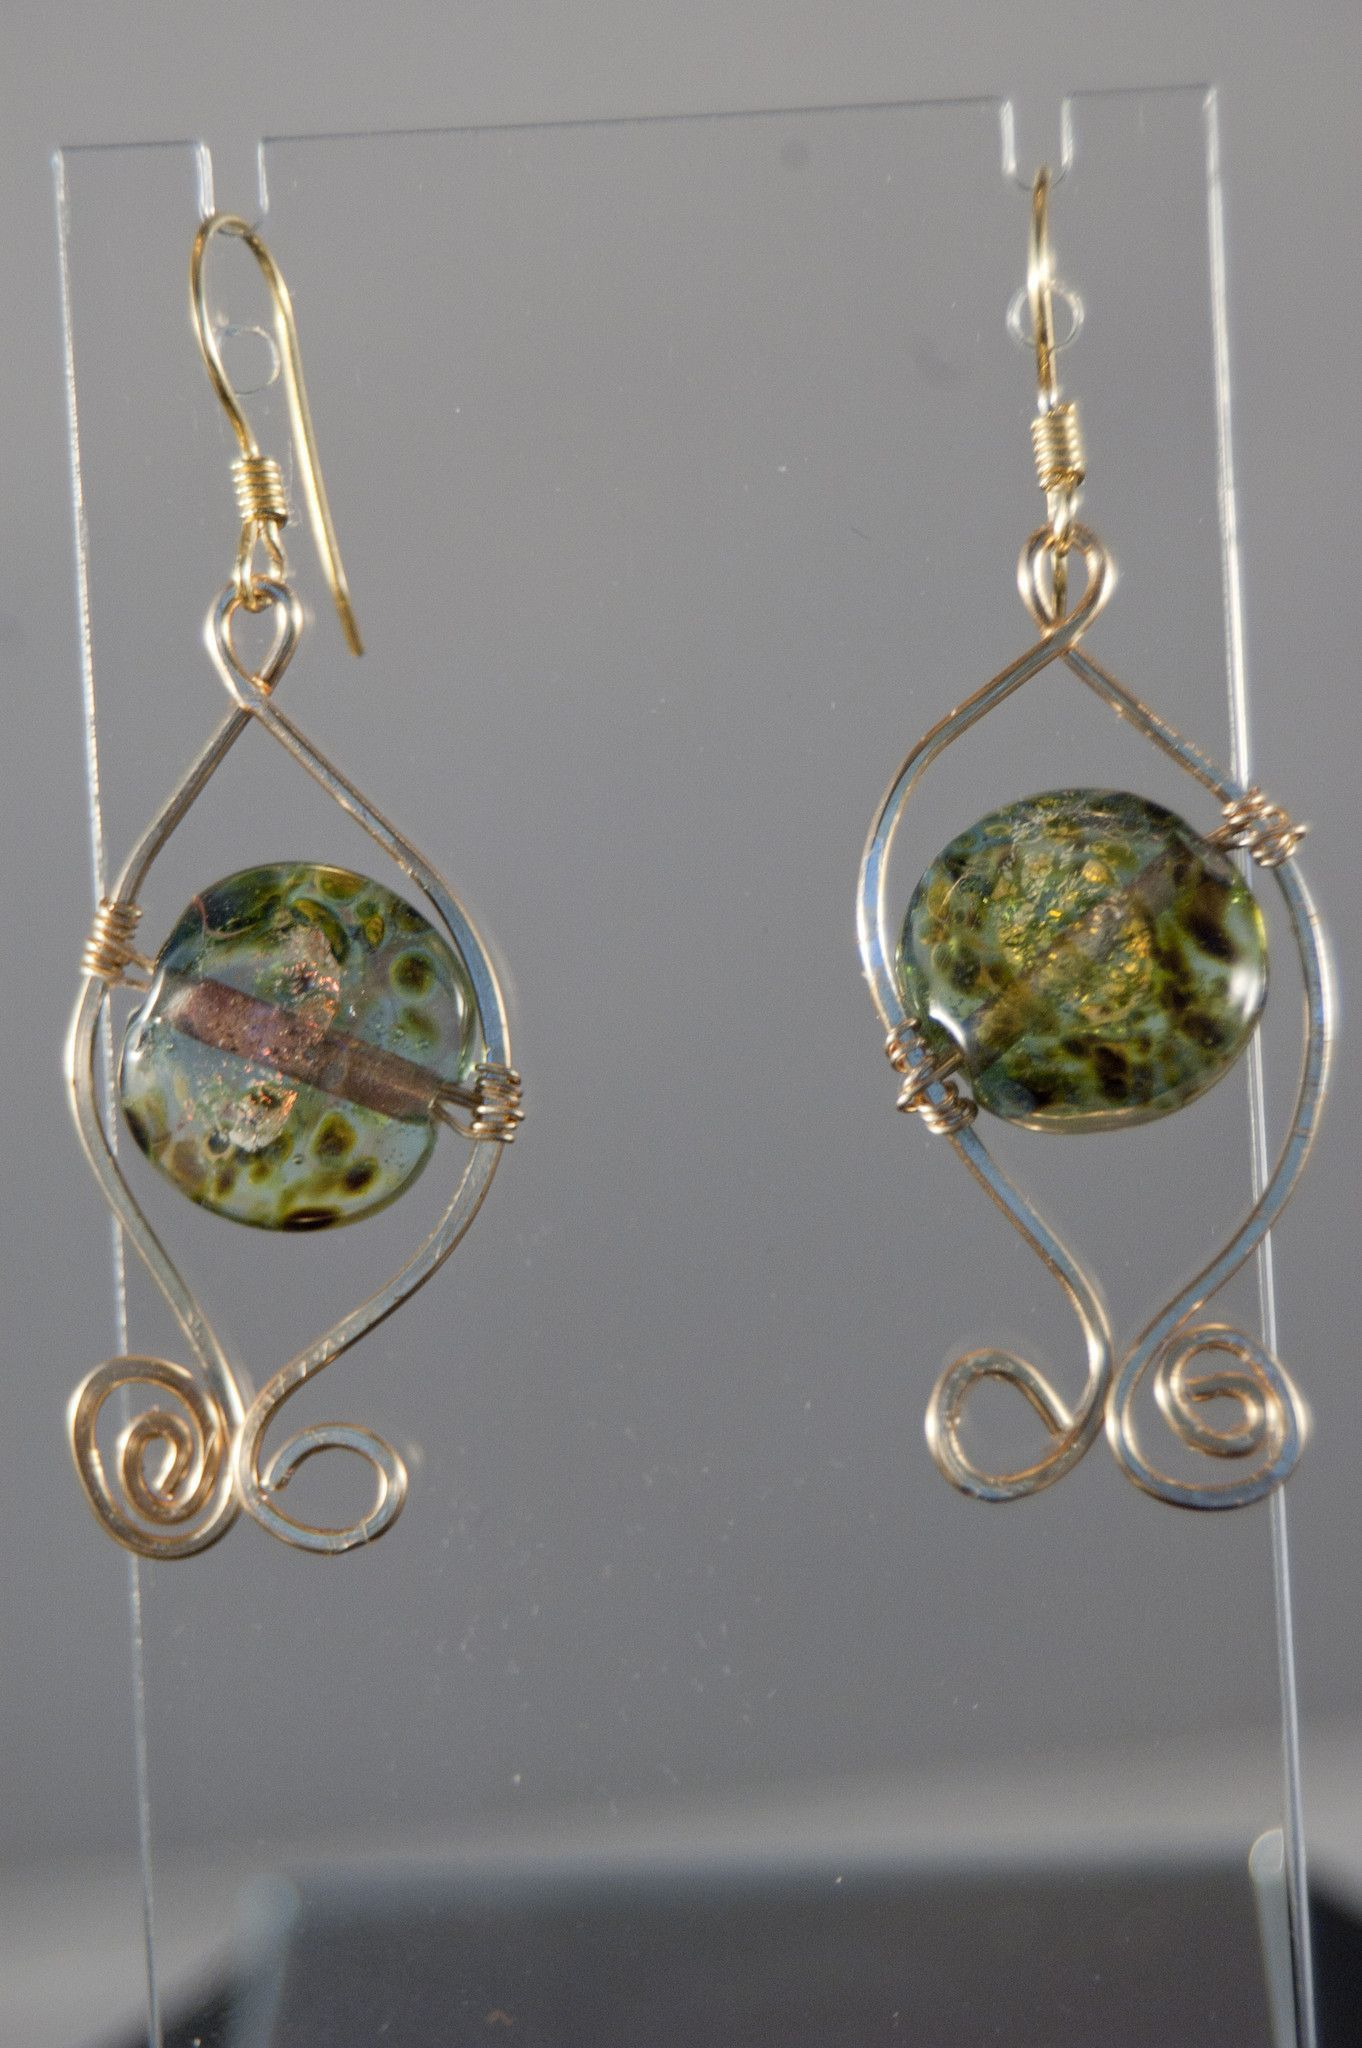 Unicorne Lampwork Lentil Beads with Gold-filled wire wrapped ...